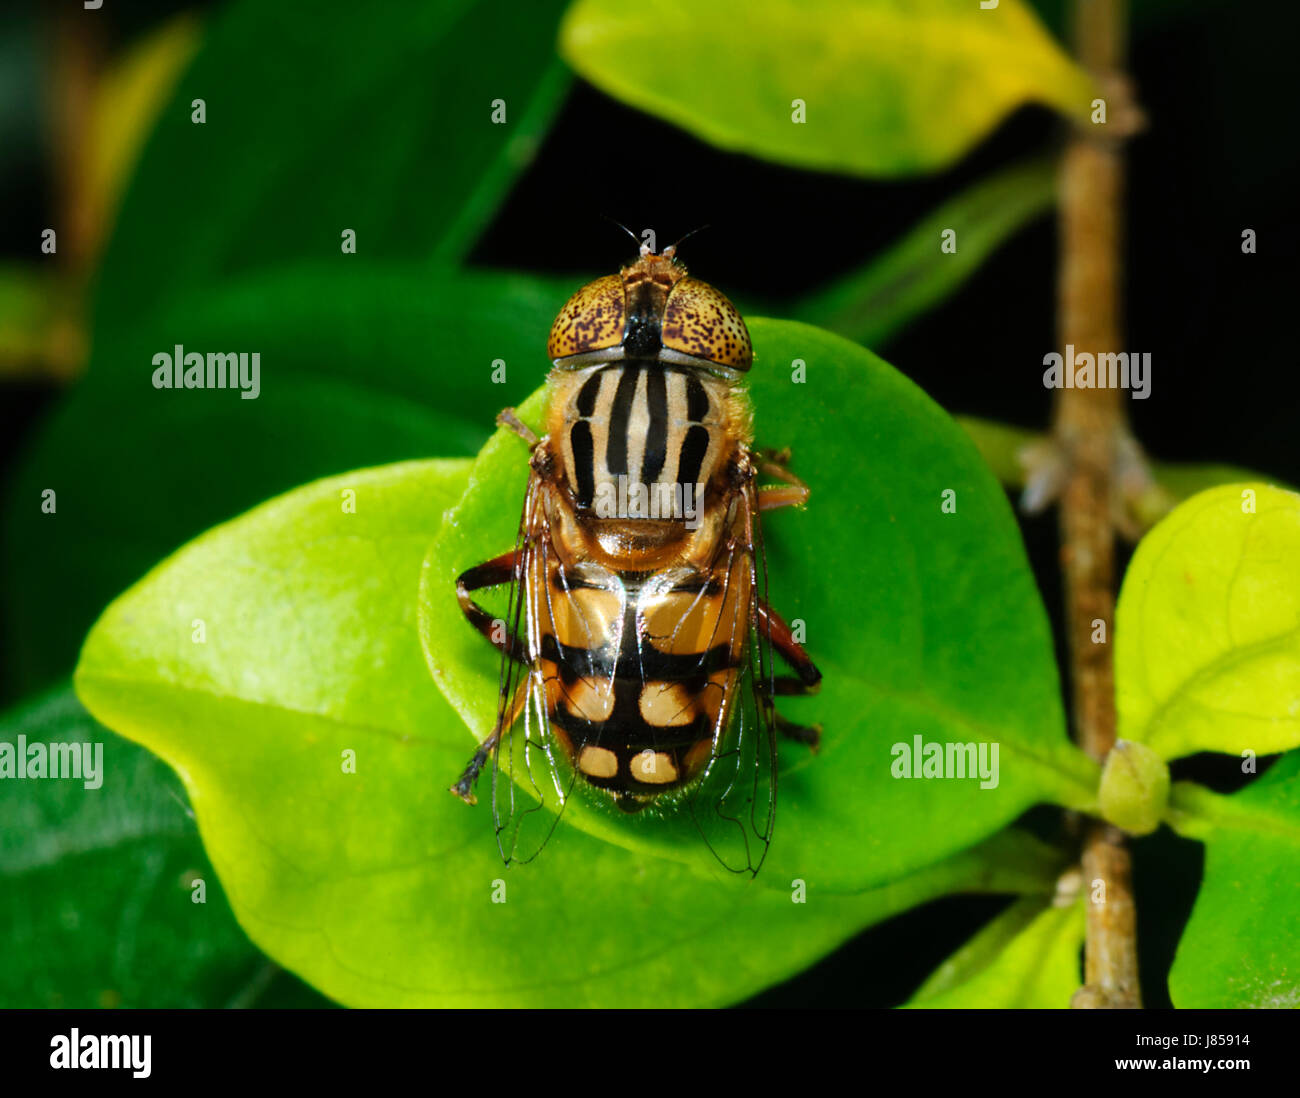 Native Drone Fly (Eristalinus punctulatus), New South Wales, NSW, Australia - Stock Image